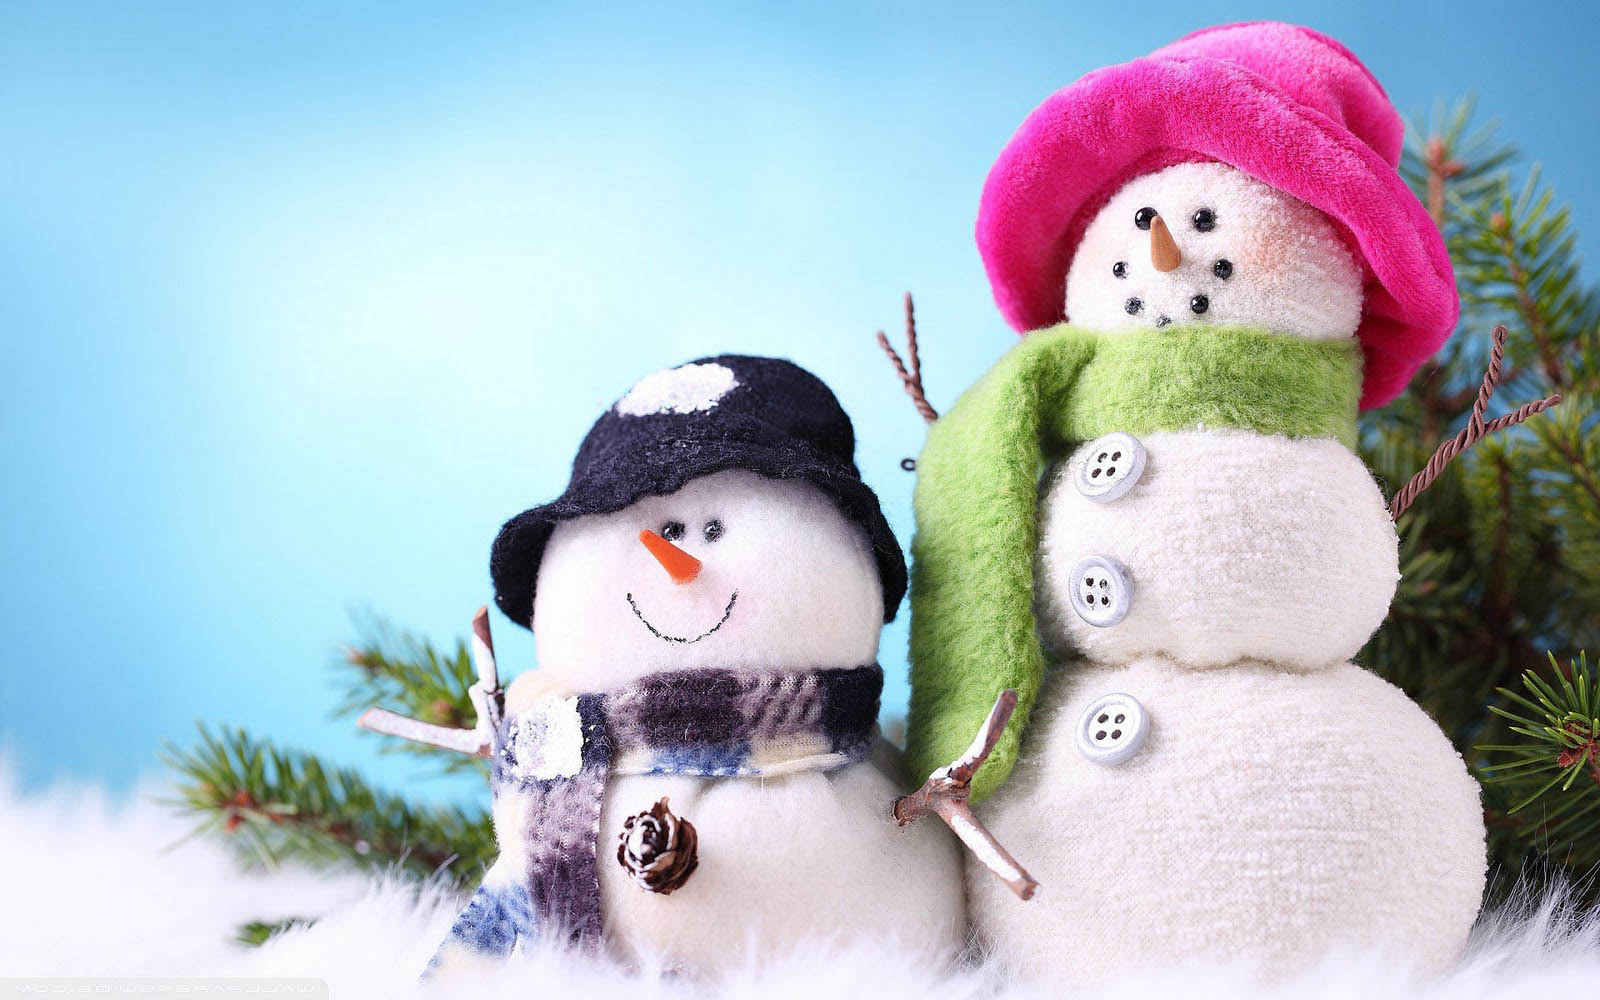 39187067-snowman-wallpapers.jpg